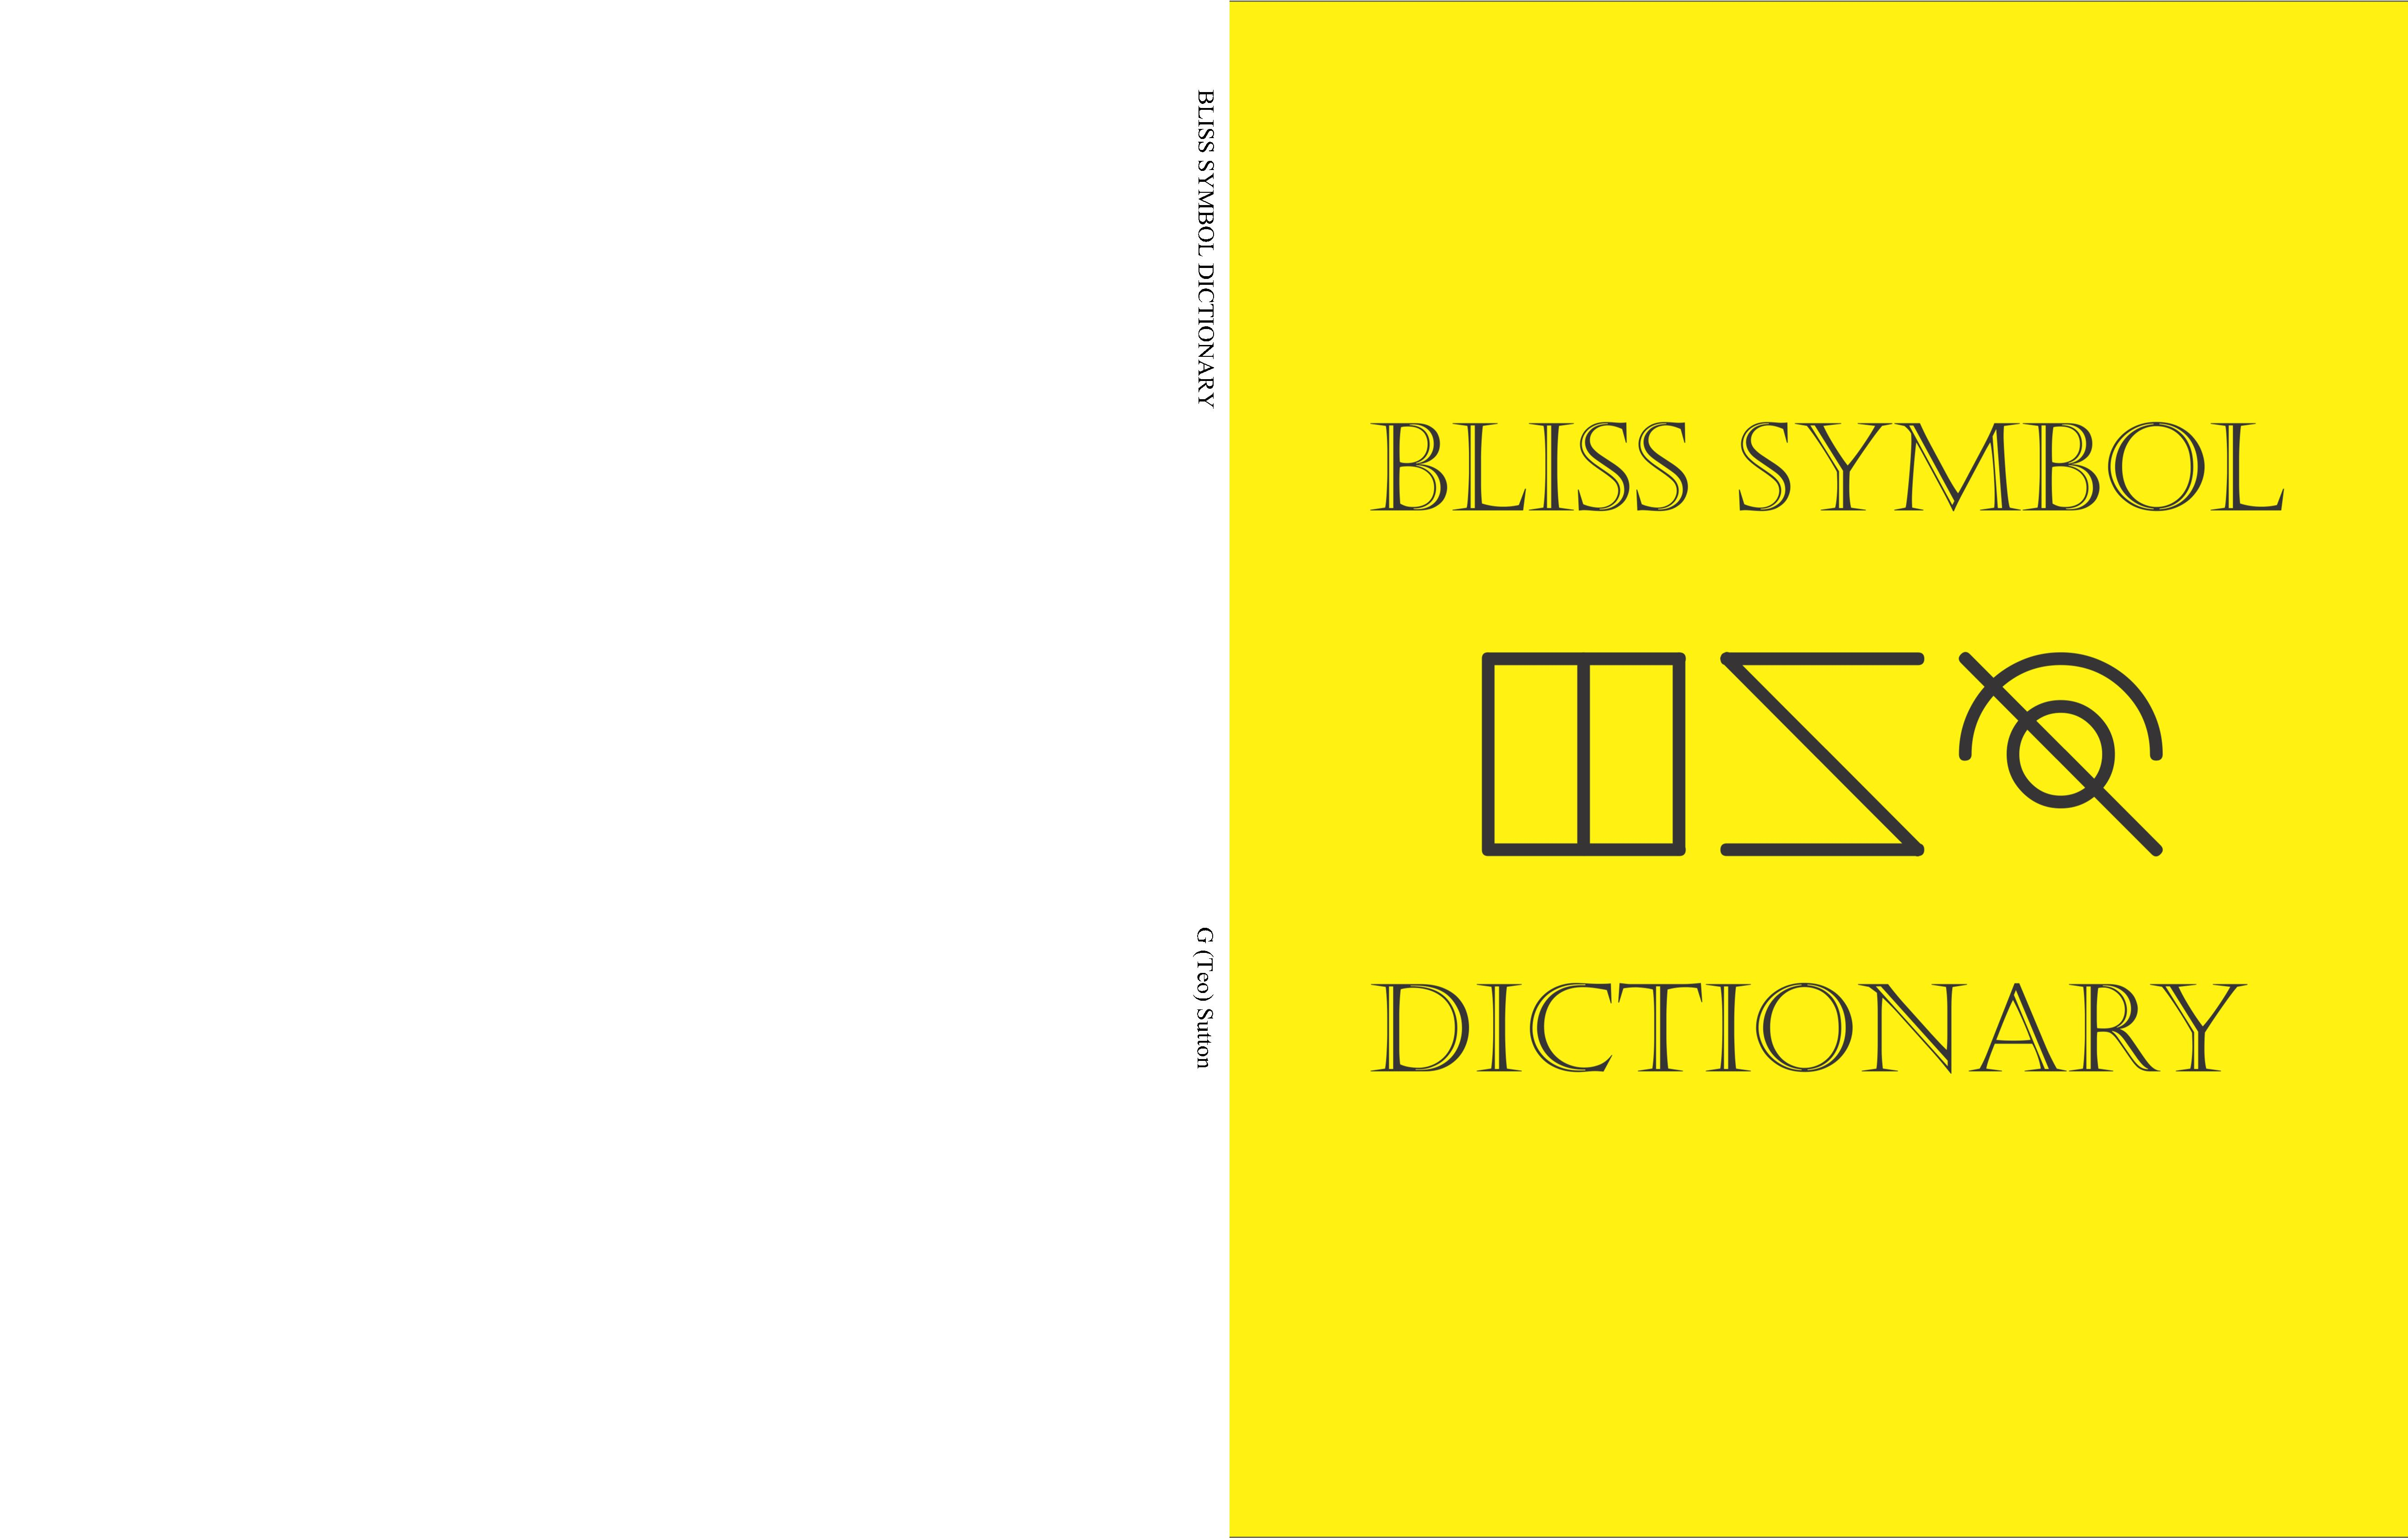 Bliss Symbol Dictionary By G Teo Sutton 1767 Thebookpatch